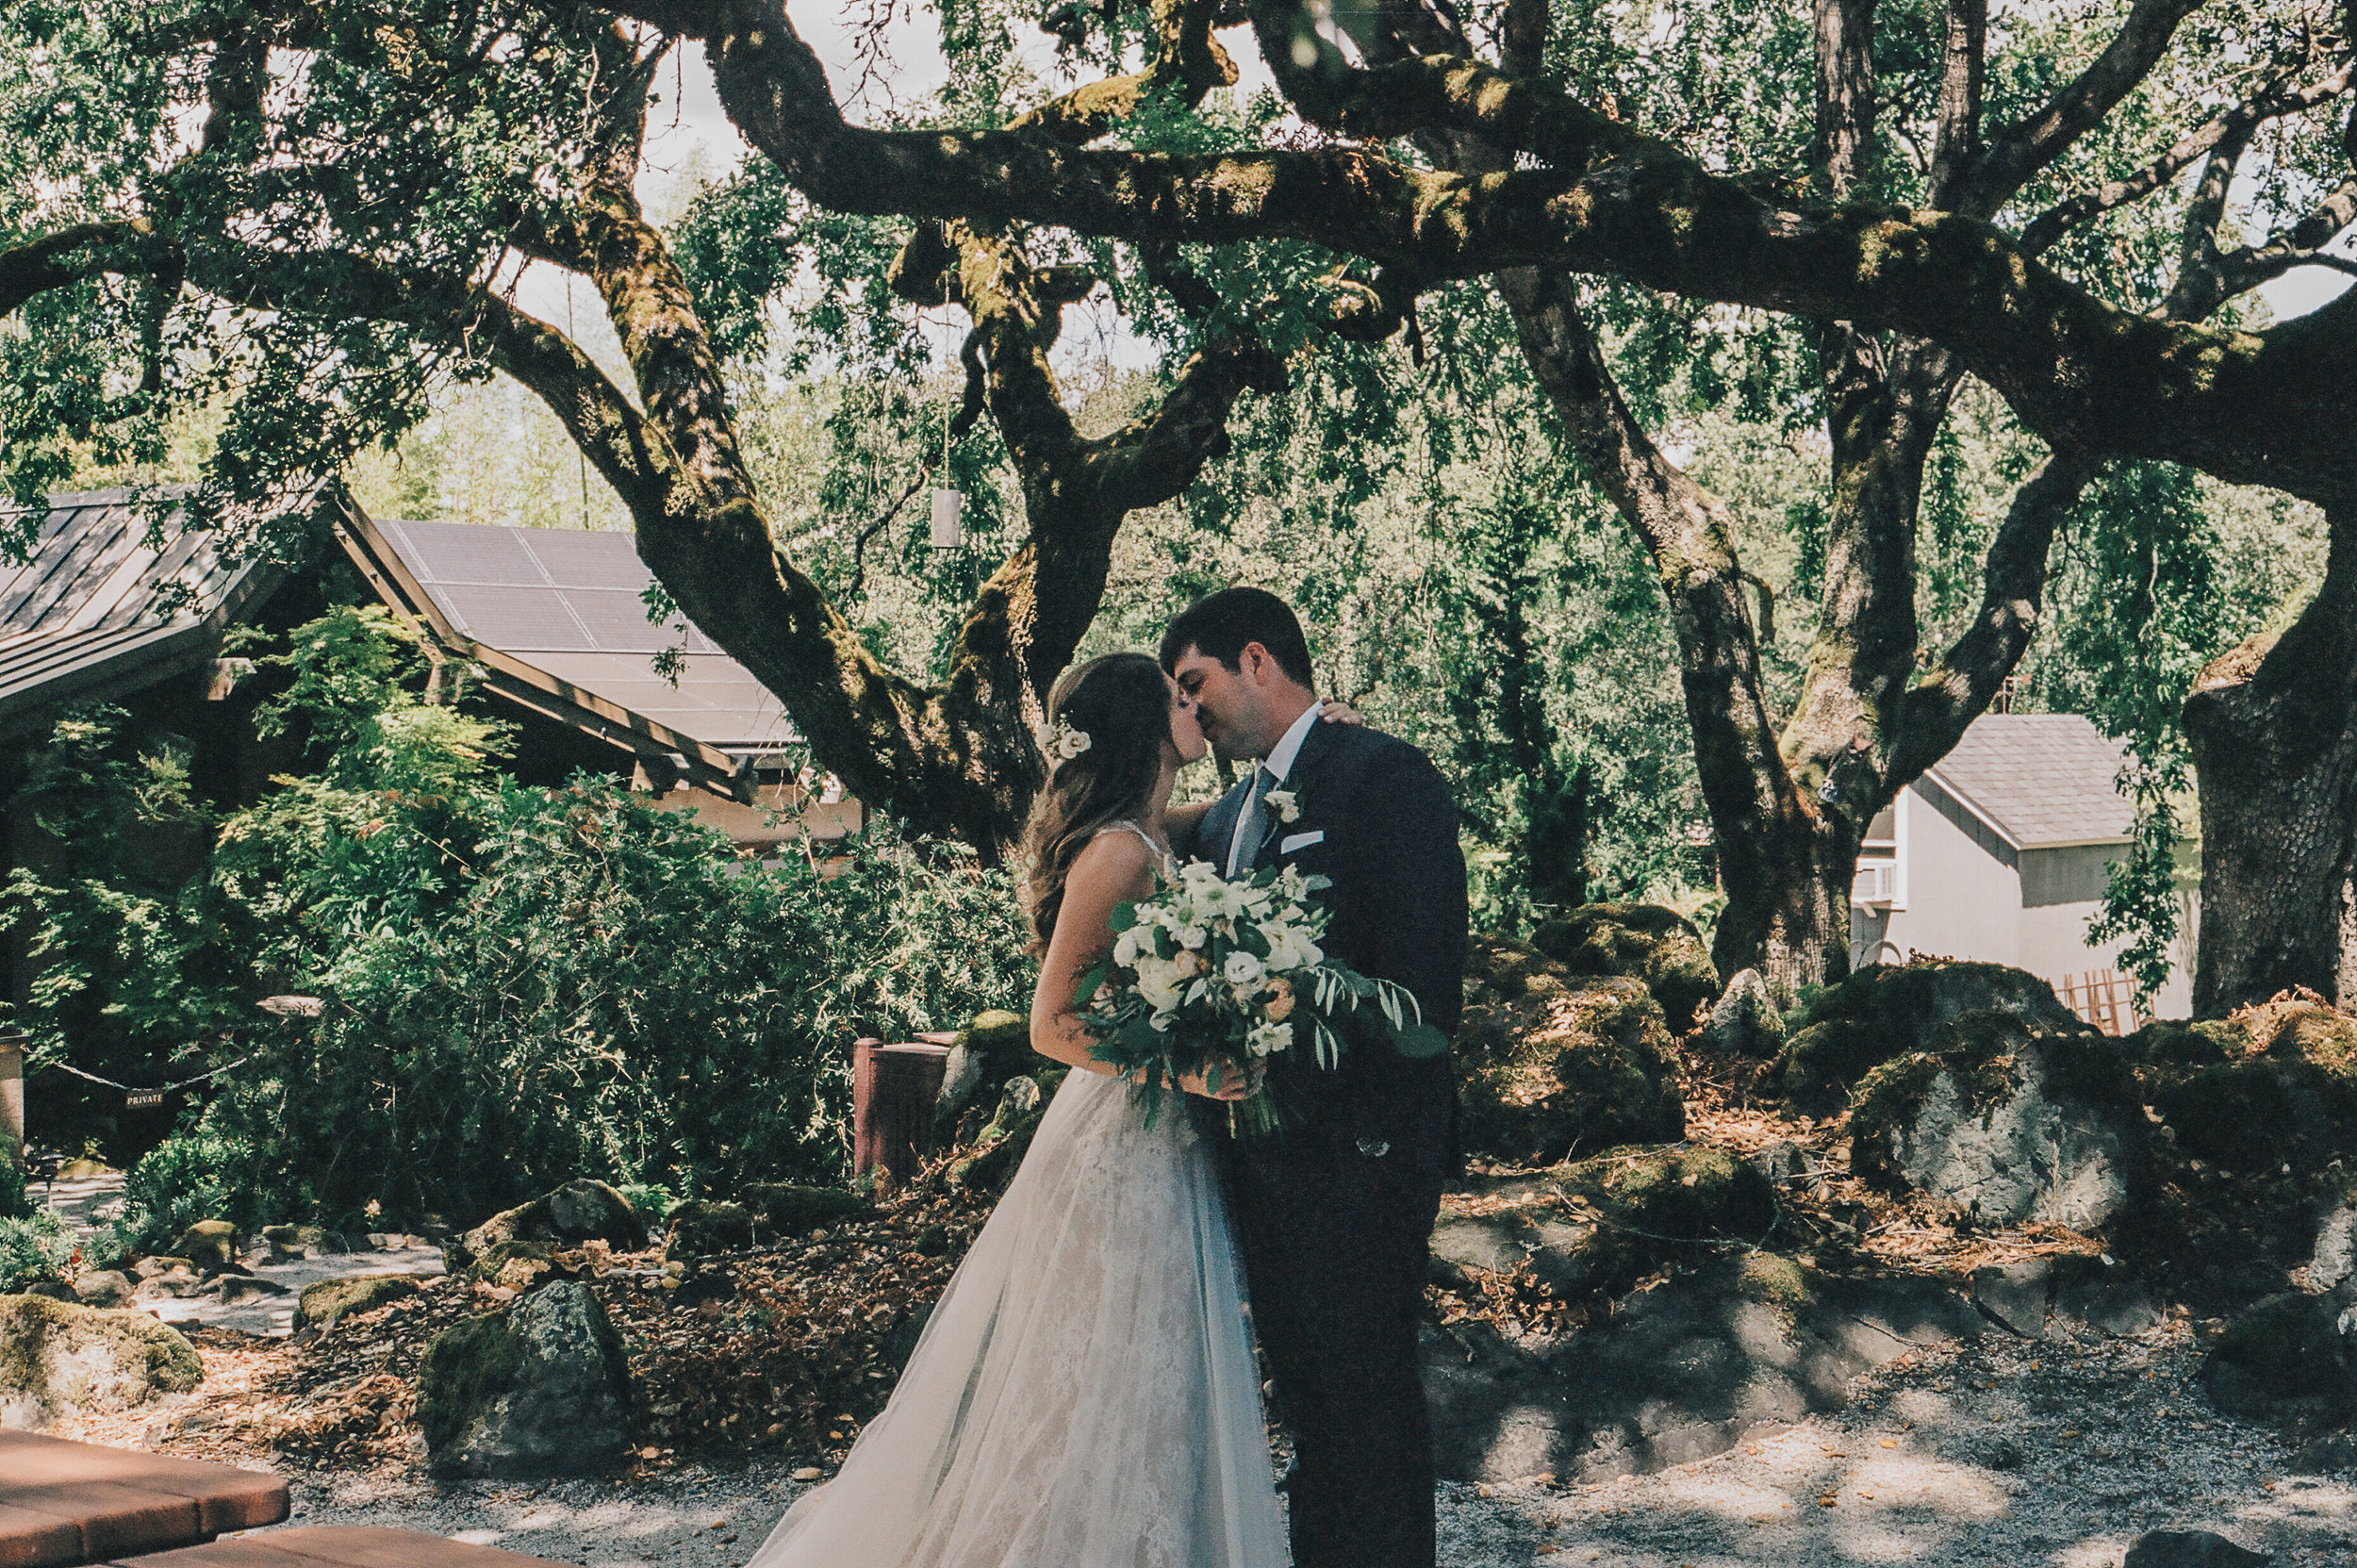 kirby-gladstein-photography-napa-valley-wedding-2017-10